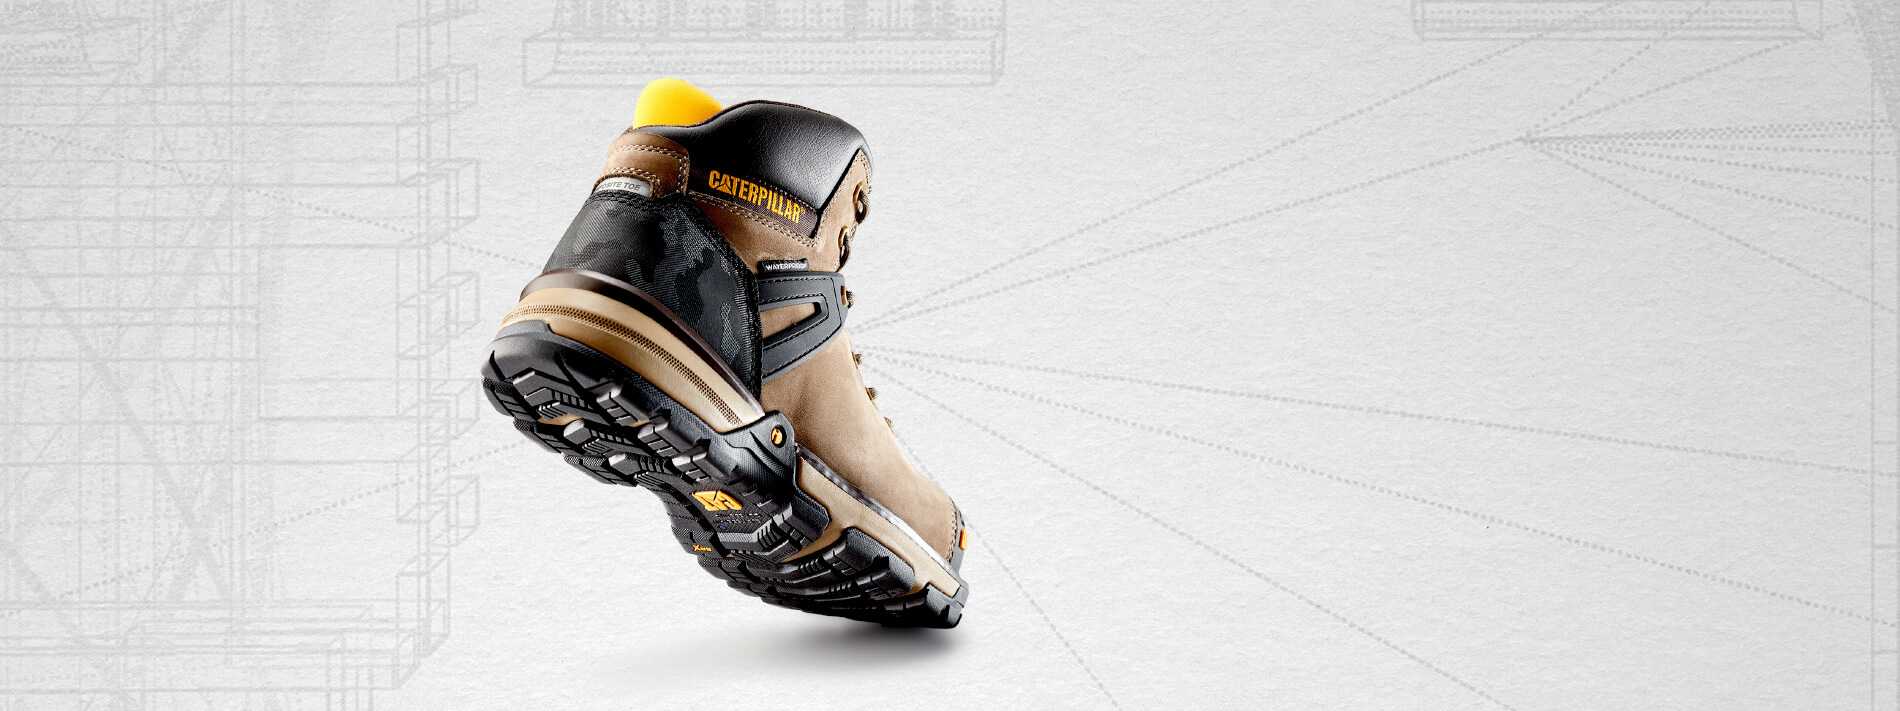 Tan, black and yellow Excavator boot.